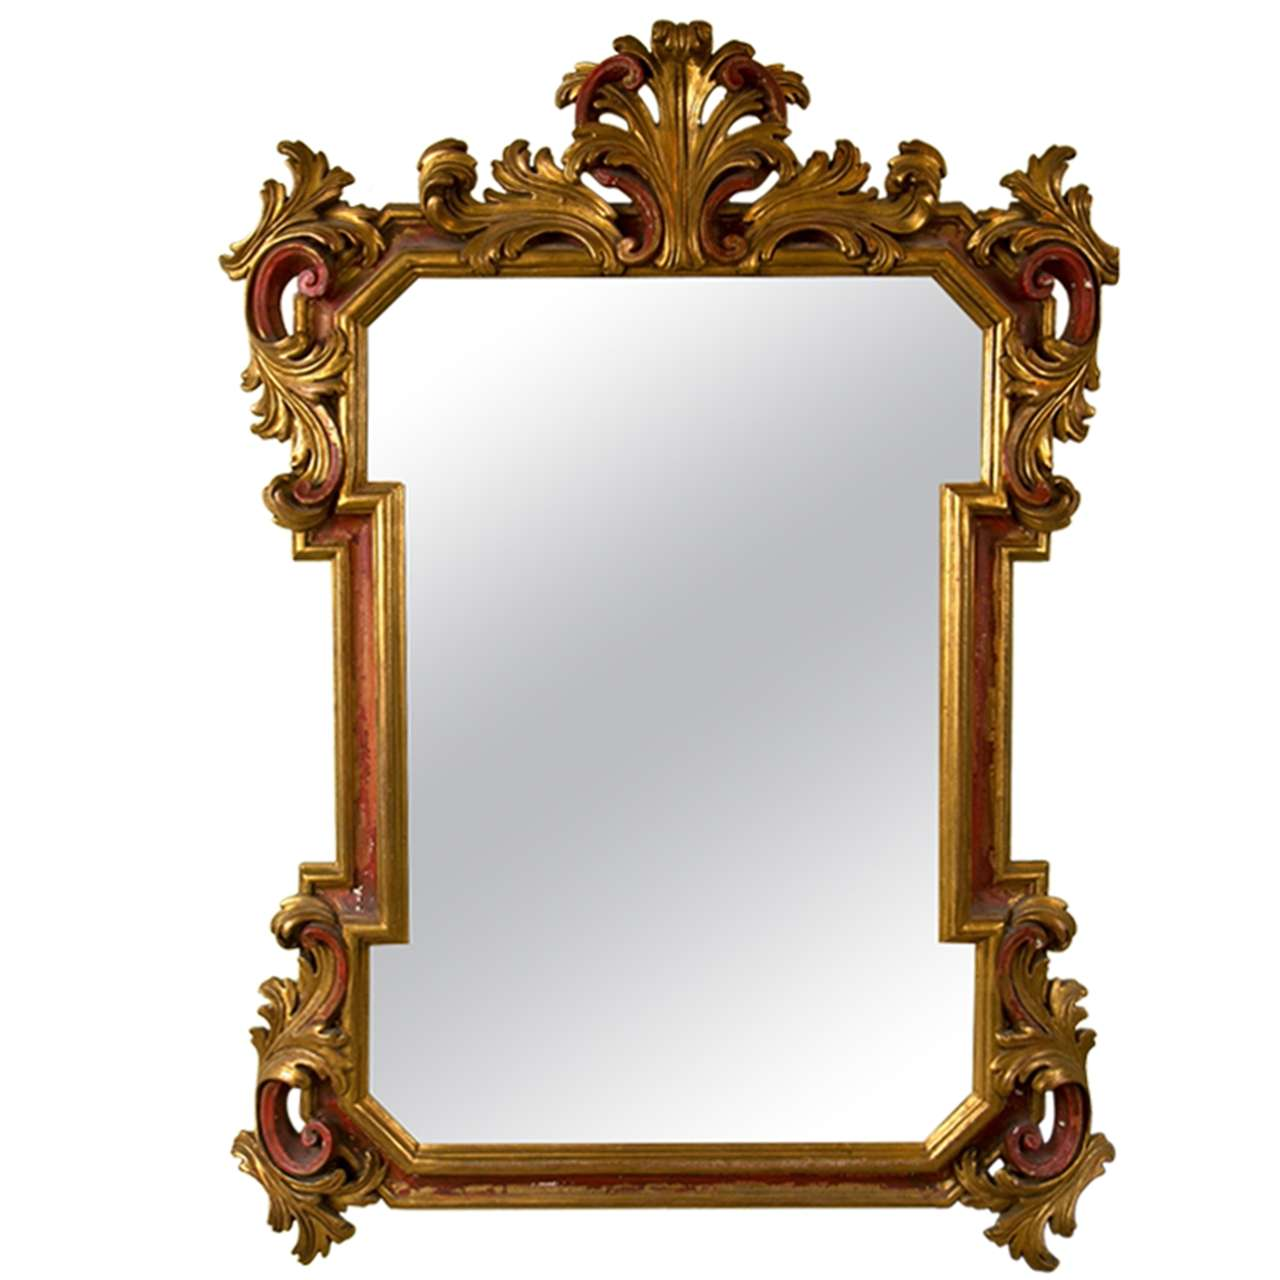 Gilt Gold And Paint Decorated Hollywood Regency Style Mirror 1